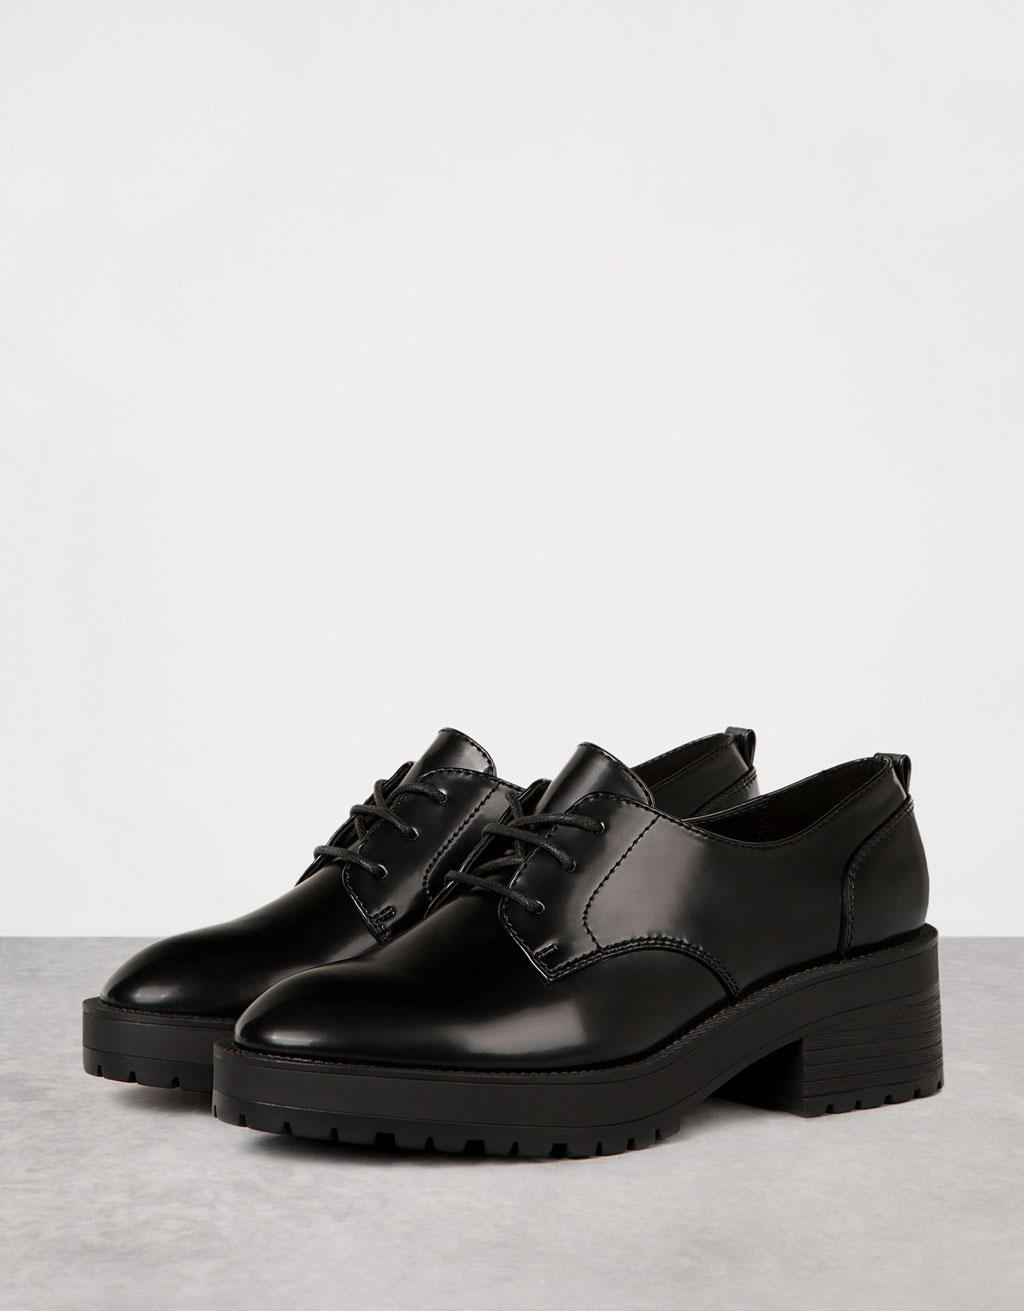 Heavy sole lace-up dress shoes